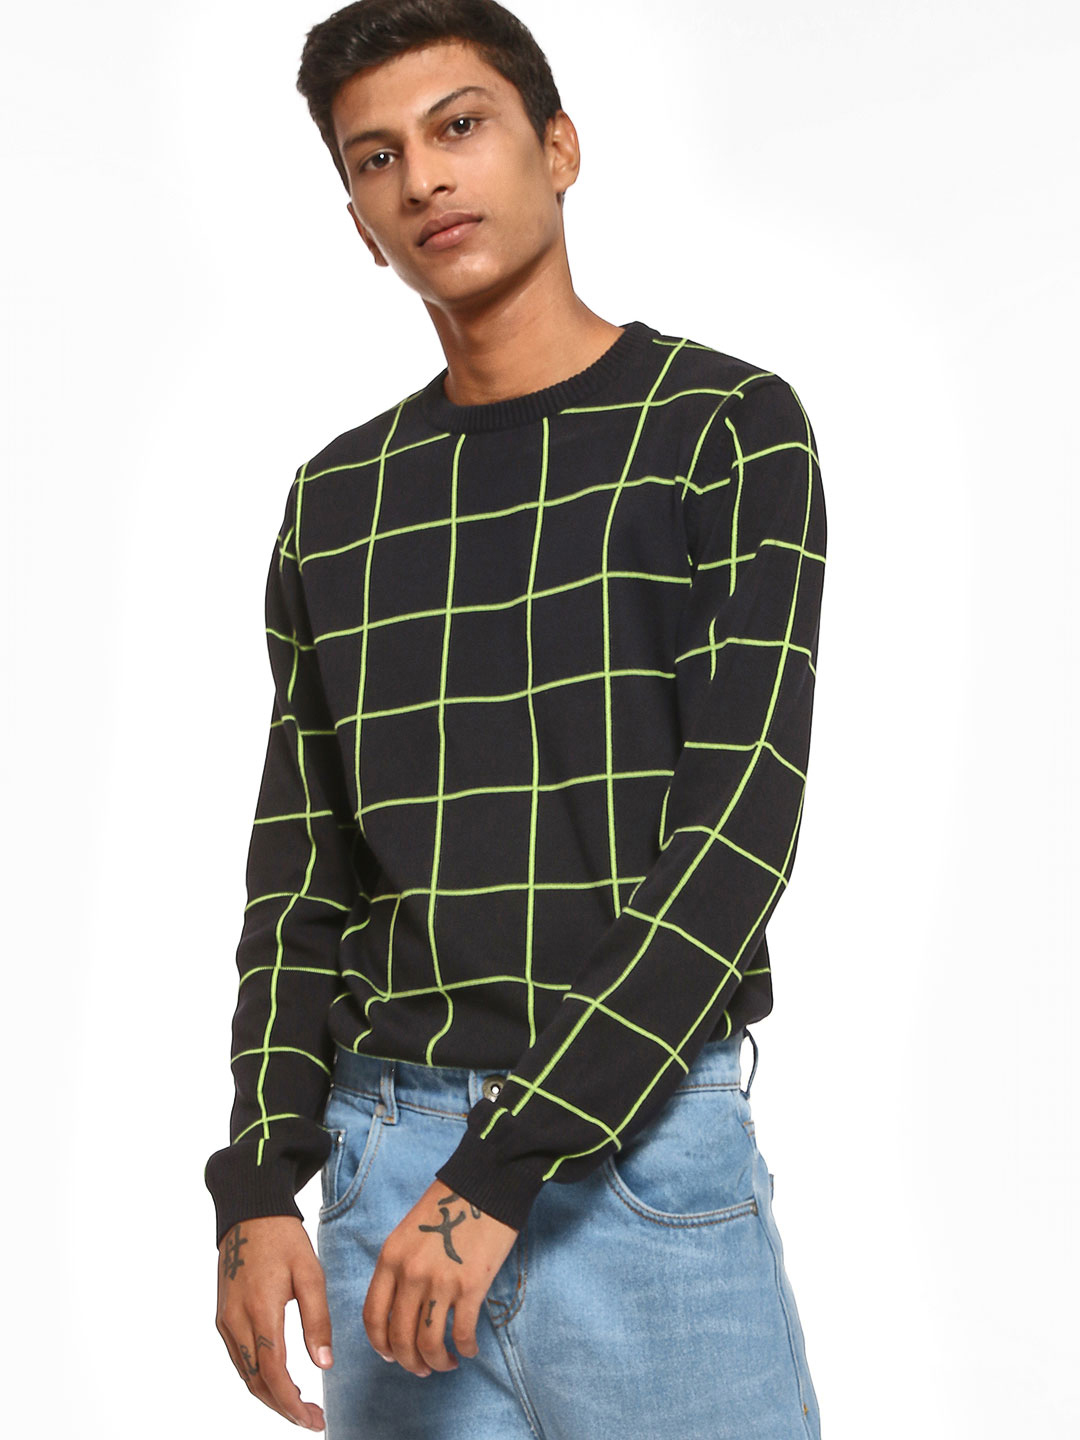 KOOVS Black Grid Check Knit Sweater 1